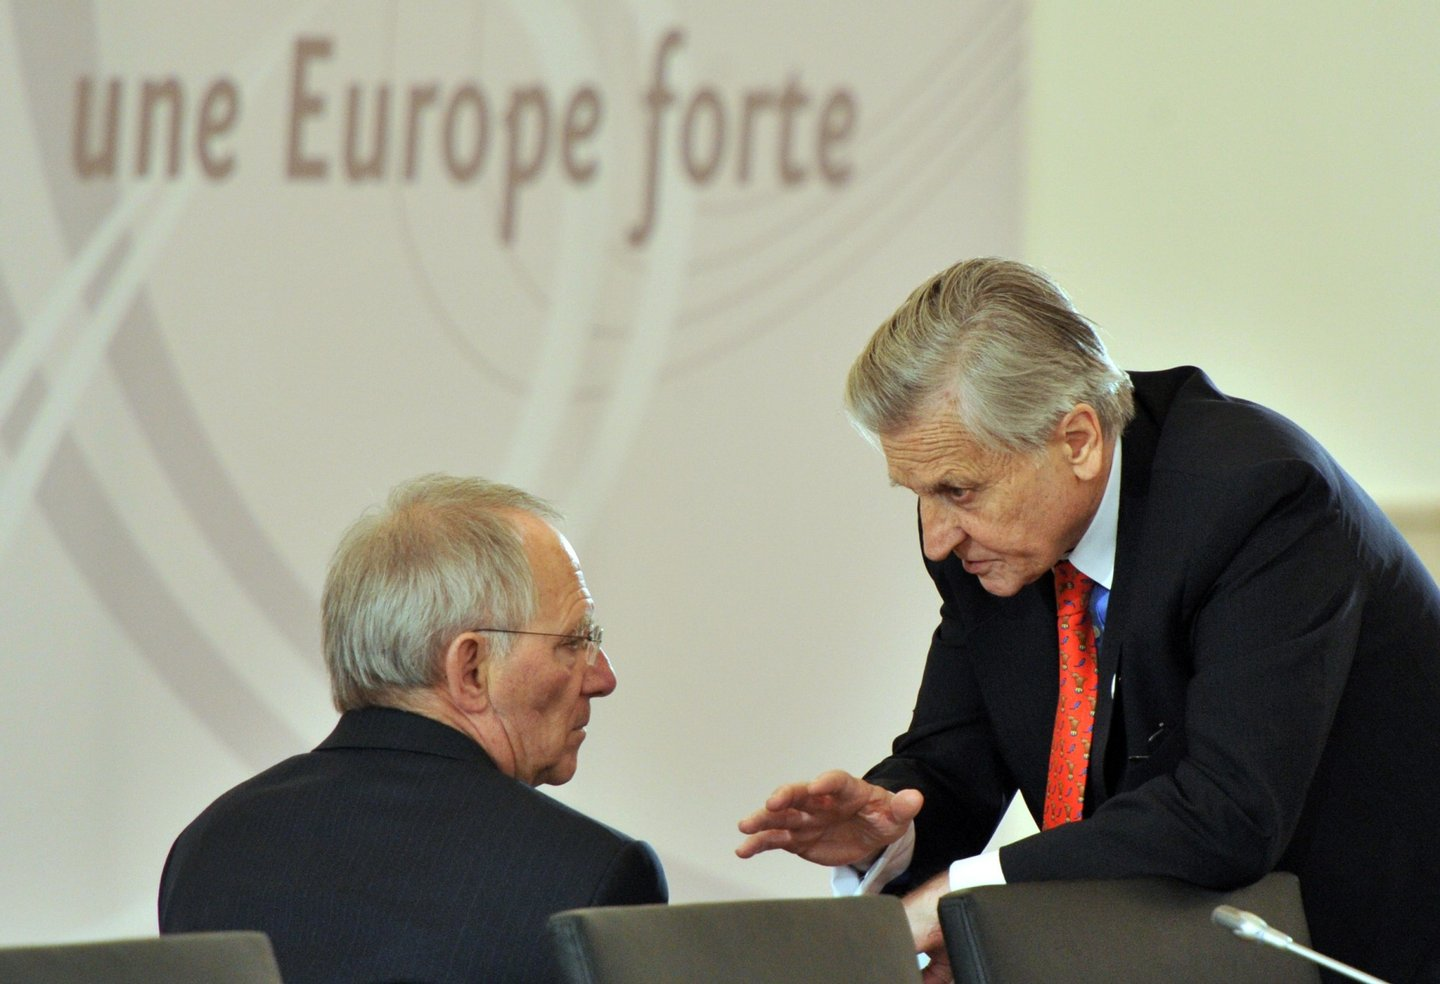 German Finance Minister Wolfgang Schaeuble (L) and European Central Bank President Jean-Claude Trichet talk on April 8, 2011 before the start of an informal meeting of EU finance ministers in Godollo, near the Hungarian capital Budapest, to thrash out the terms of a multi-billion dollar loan to Portugal after the debt-laden Lisbon government formally requested a bailout. The ministers were expected to discuss both the size of the loan and the terms of its repayment at the two-day meeting. Around two-thirds of the cash will come from the EU while the rest will be covered by the International Monetary Fund.  AFP PHOTO / GEORGES GOBET        (Photo credit should read GEORGES GOBET/AFP/Getty Images)